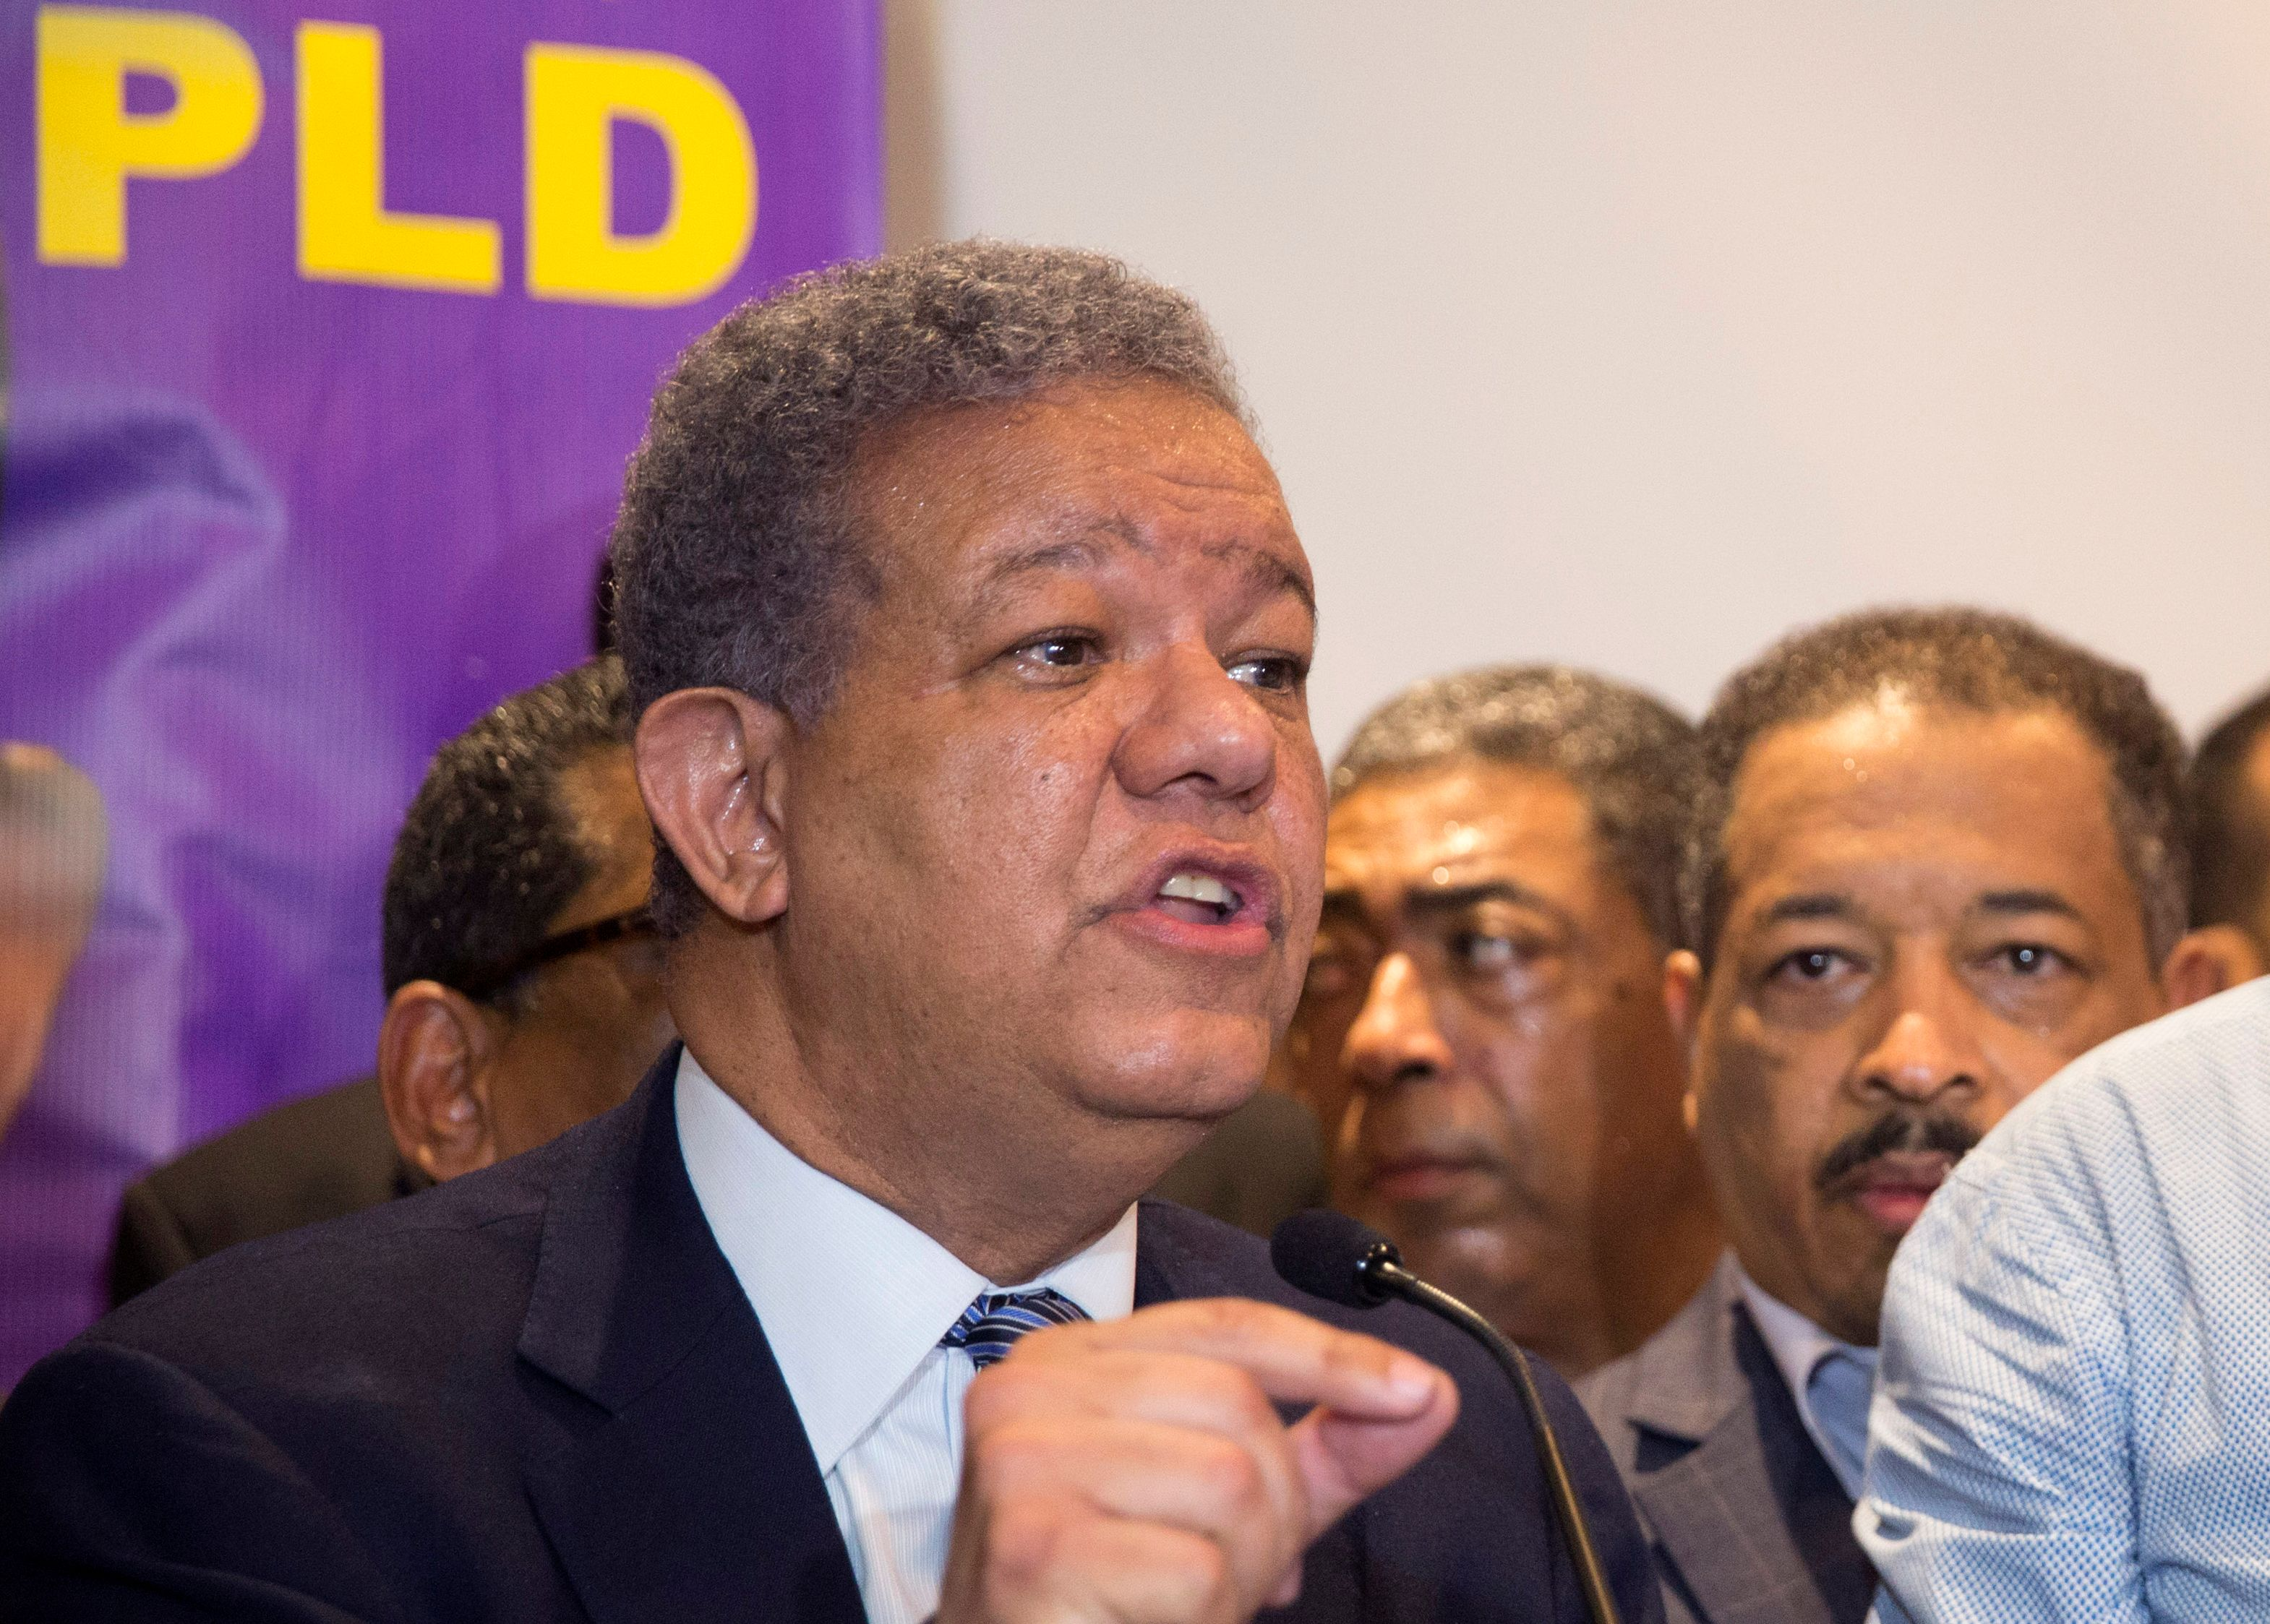 Leonel Fernandez speaking at a news conference